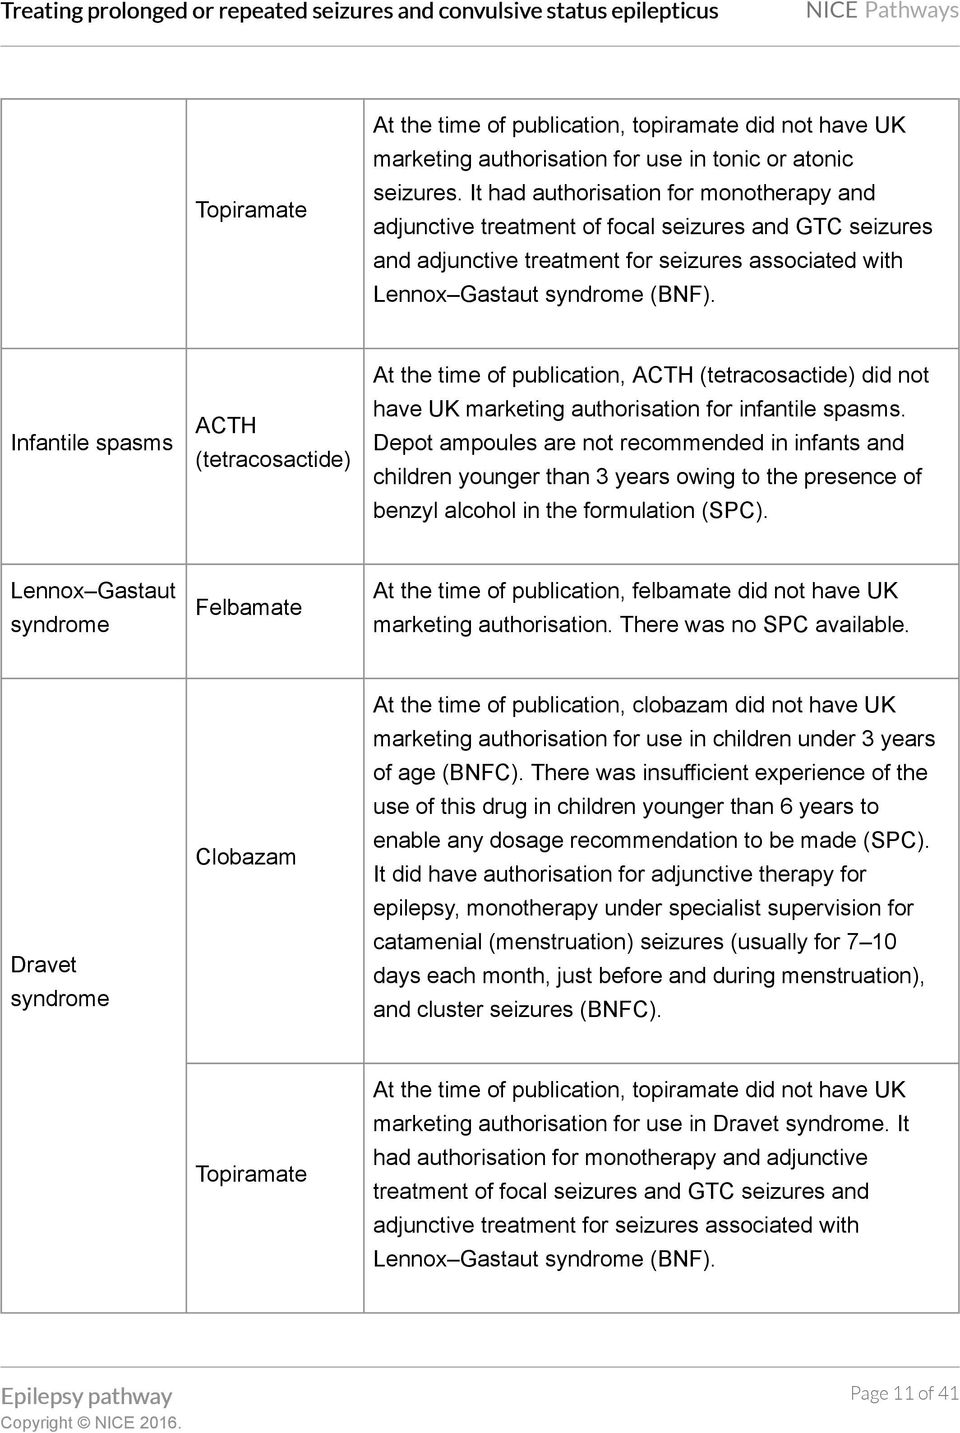 Infantile spasms ACTH (tetracosactide) At the time of publication, ACTH (tetracosactide) did not have UK marketing authorisation for infantile spasms.